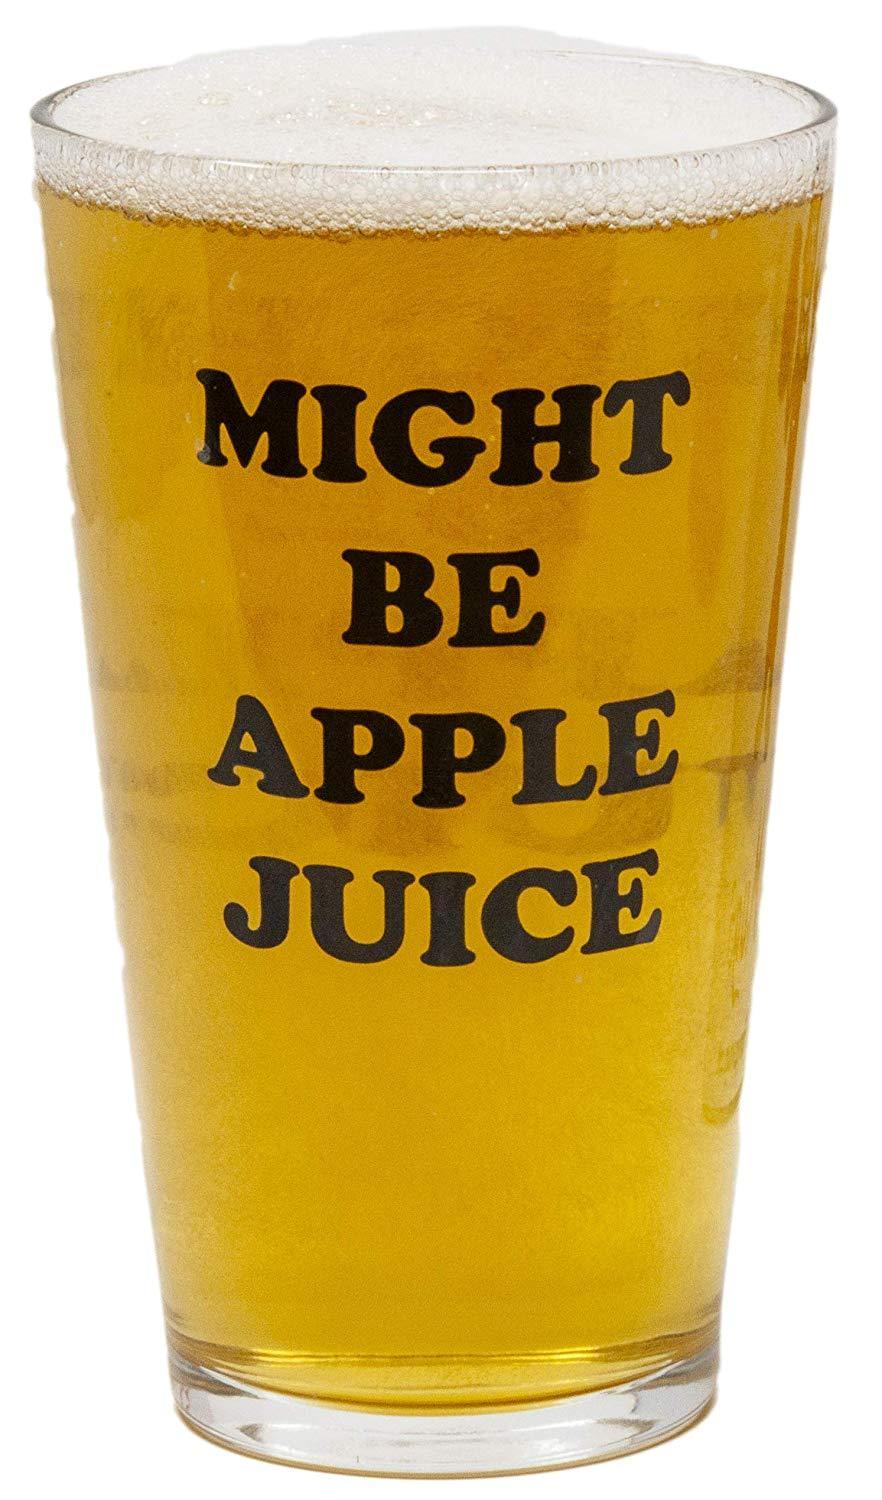 """Is it covert Motts or a pint of Coors Light? The world may never know.<br><br><strong>Funny Guy Mugs</strong> Might Be Apple Juice 16 Oz Pint Glass, $, available at <a href=""""https://amzn.to/38pQhvp"""" rel=""""nofollow noopener"""" target=""""_blank"""" data-ylk=""""slk:Amazon"""" class=""""link rapid-noclick-resp"""">Amazon</a>"""